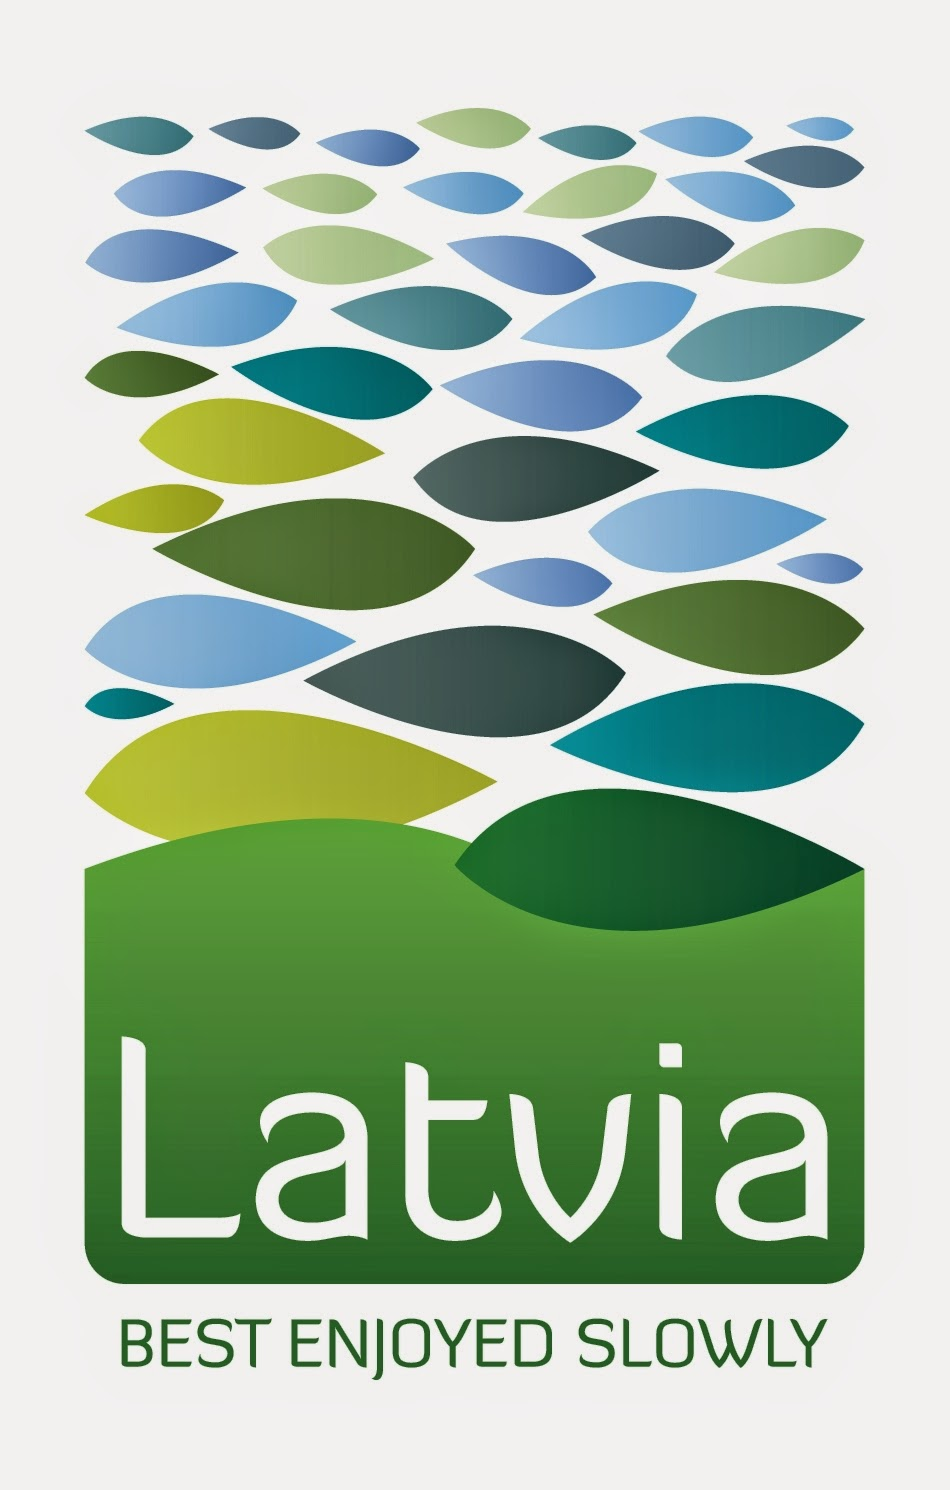 http://www.latvia.travel/en